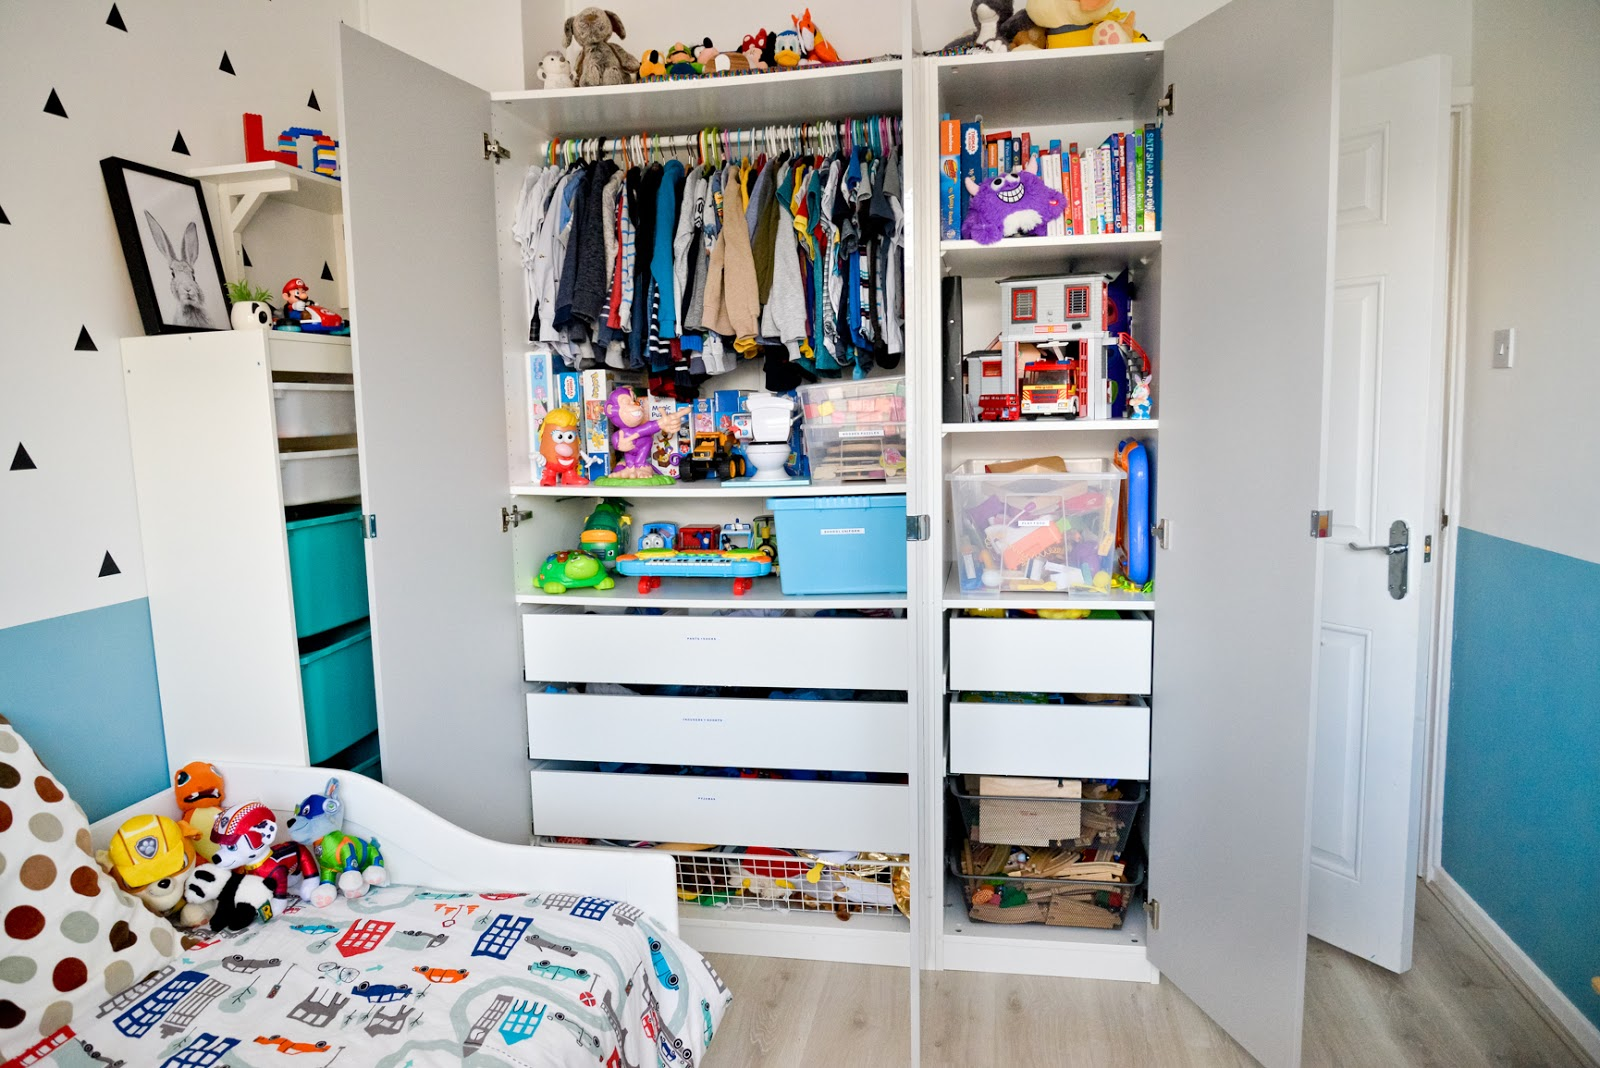 ikea pax wardrobe for kids, kids modern room, kids room decor, modern kids room, kids room ideas,